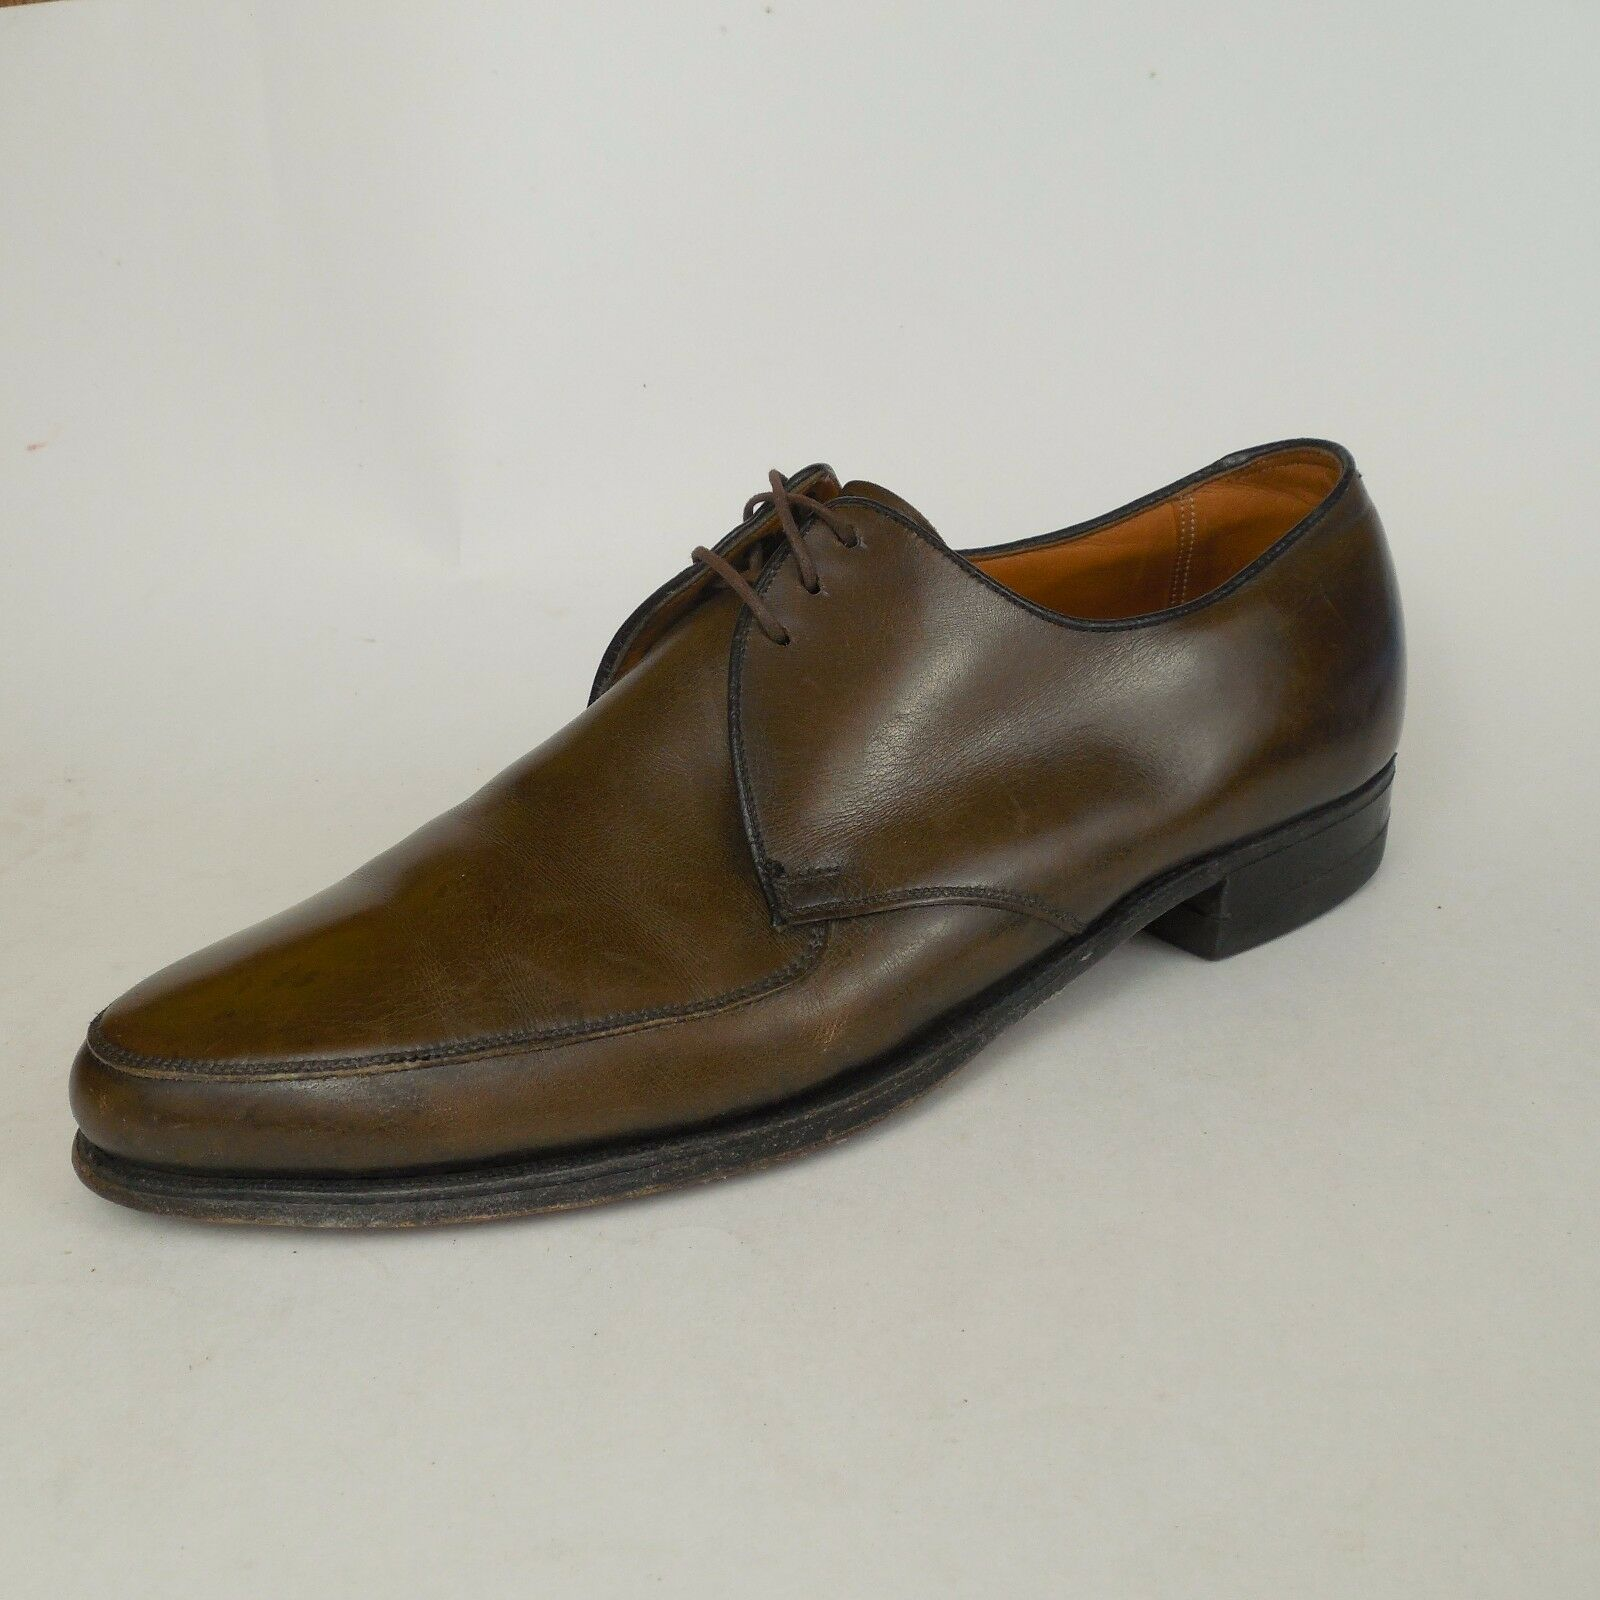 Florsheim Uomo Classic Oxford Dress Shoes Uomo SZ 9 D Med Moc Toe Brown Pelle